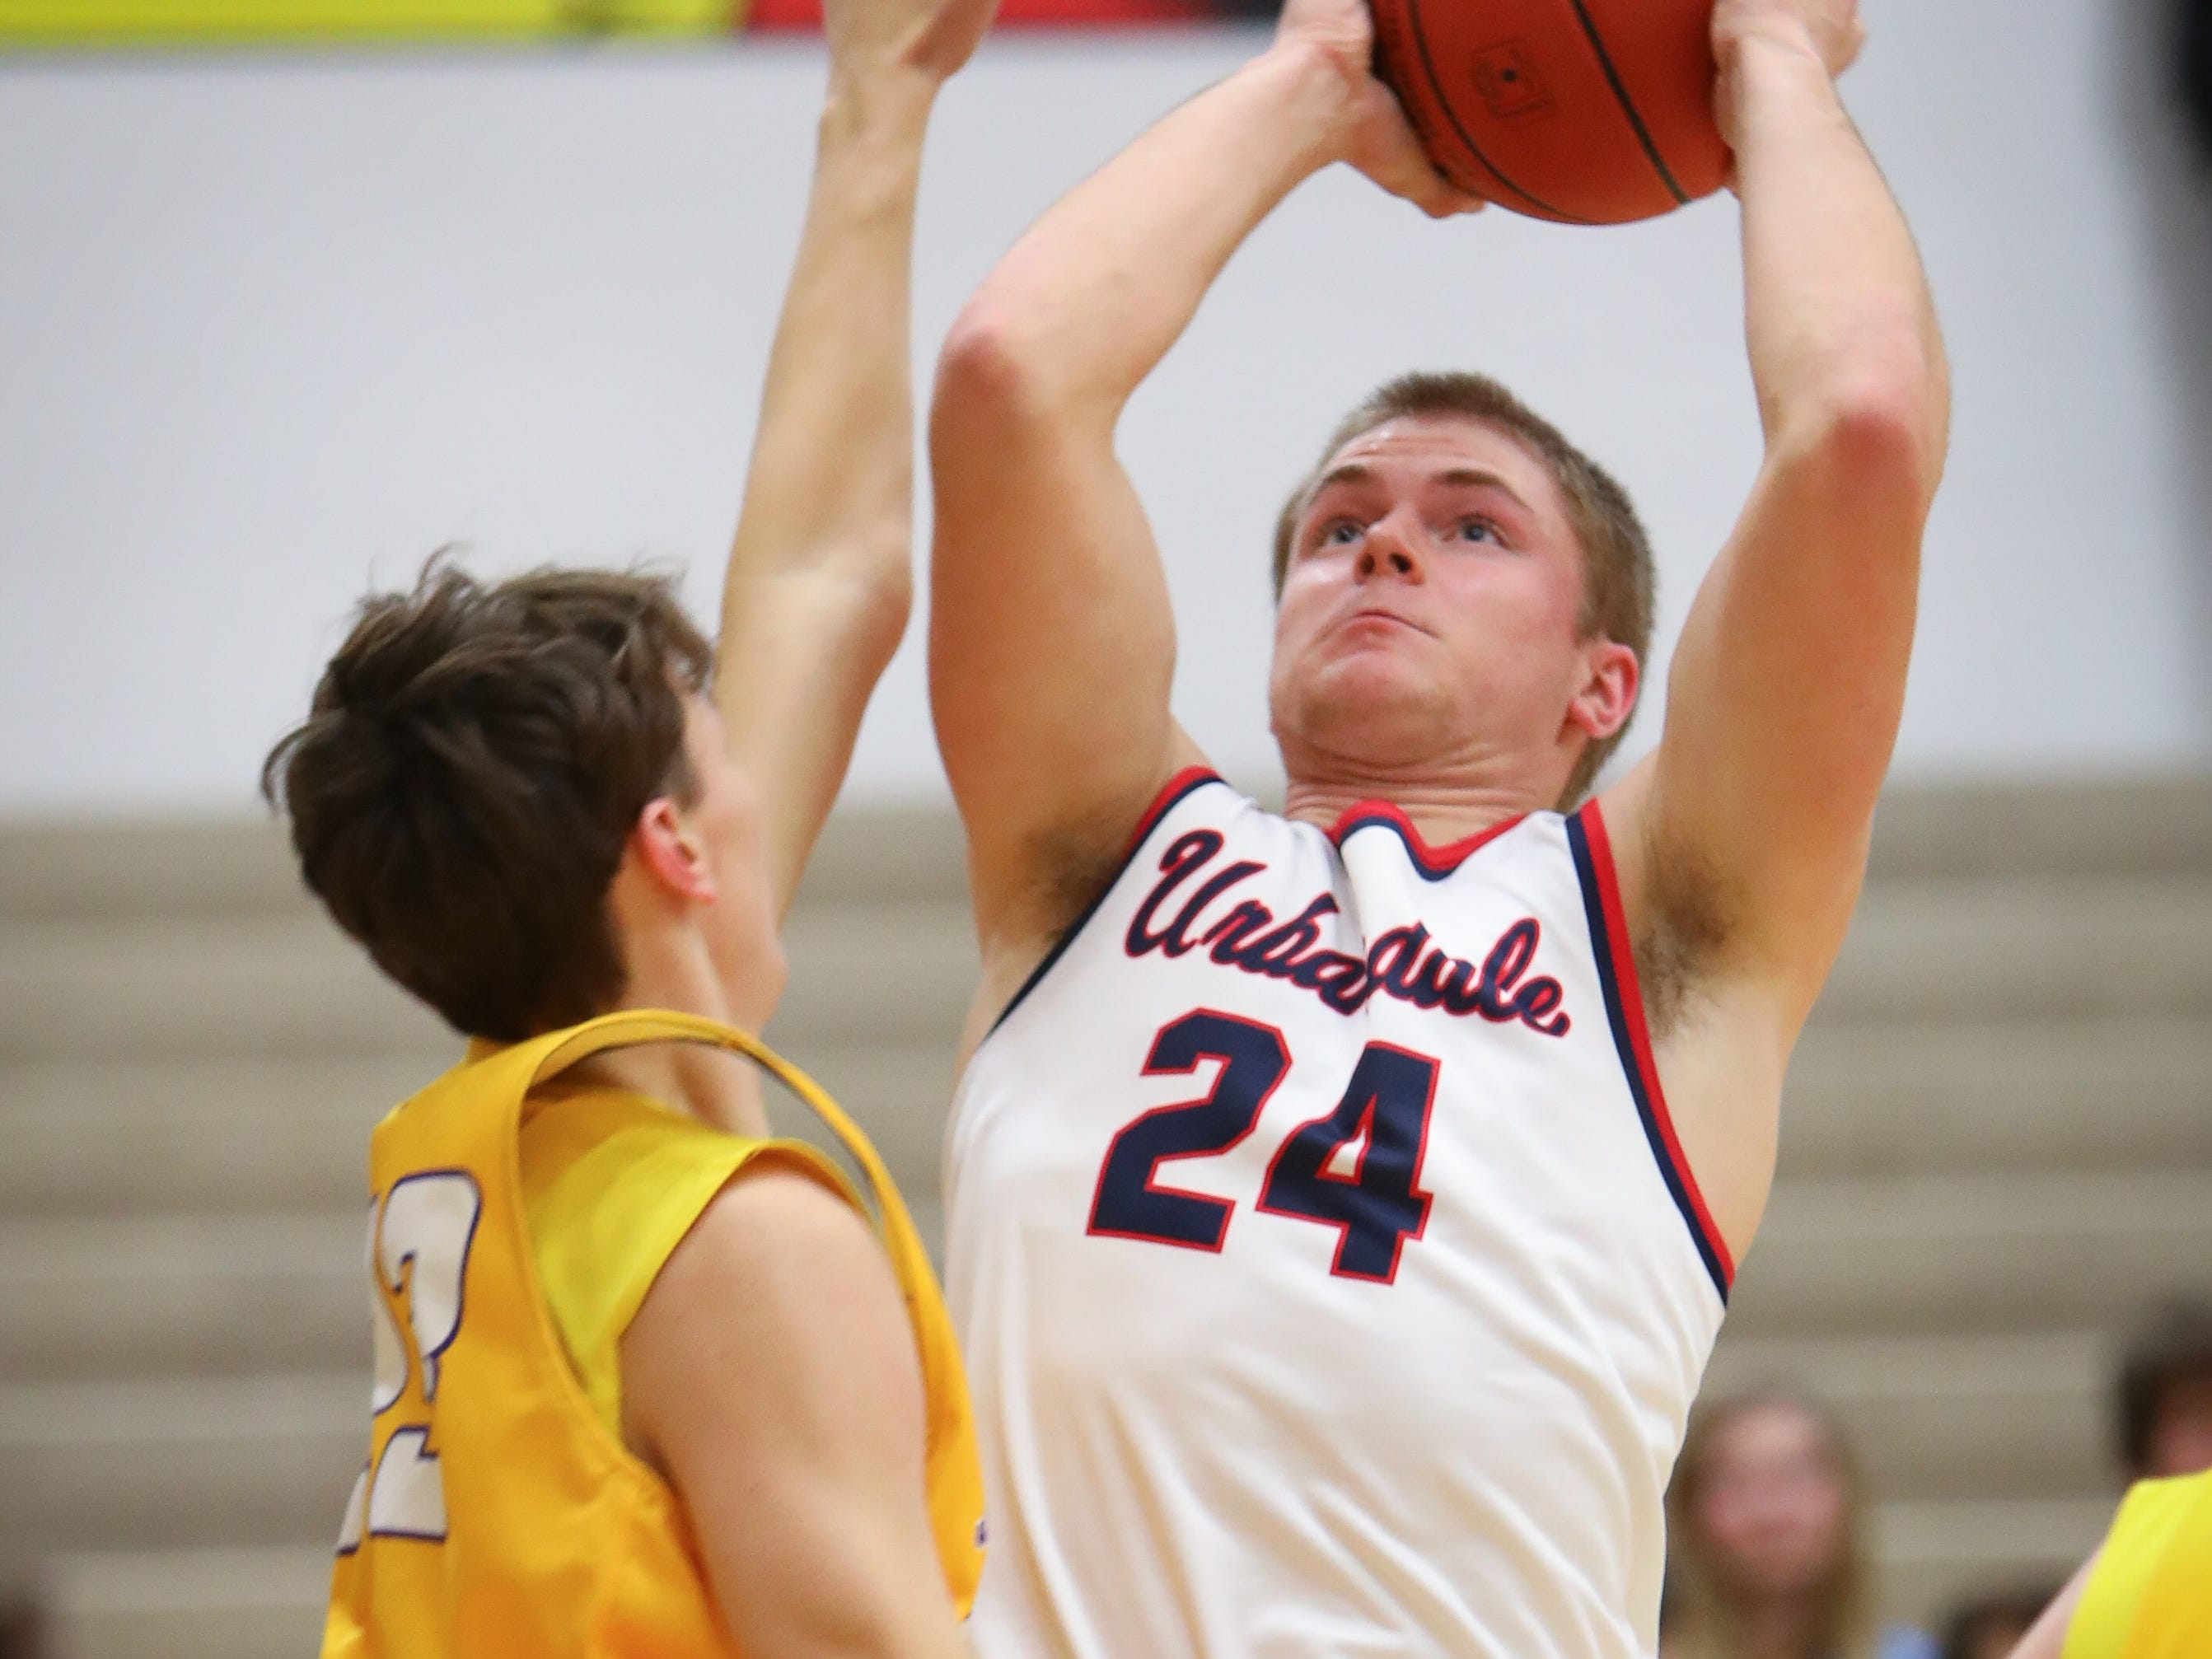 Urbandale senior Will Pattison attempts a field goal during a boys high school basketball game between the Johnston Dragons and the Urbandale J-Hawks at Urbandale High School on Dec. 18, 2018 in Urbandale, Iowa.